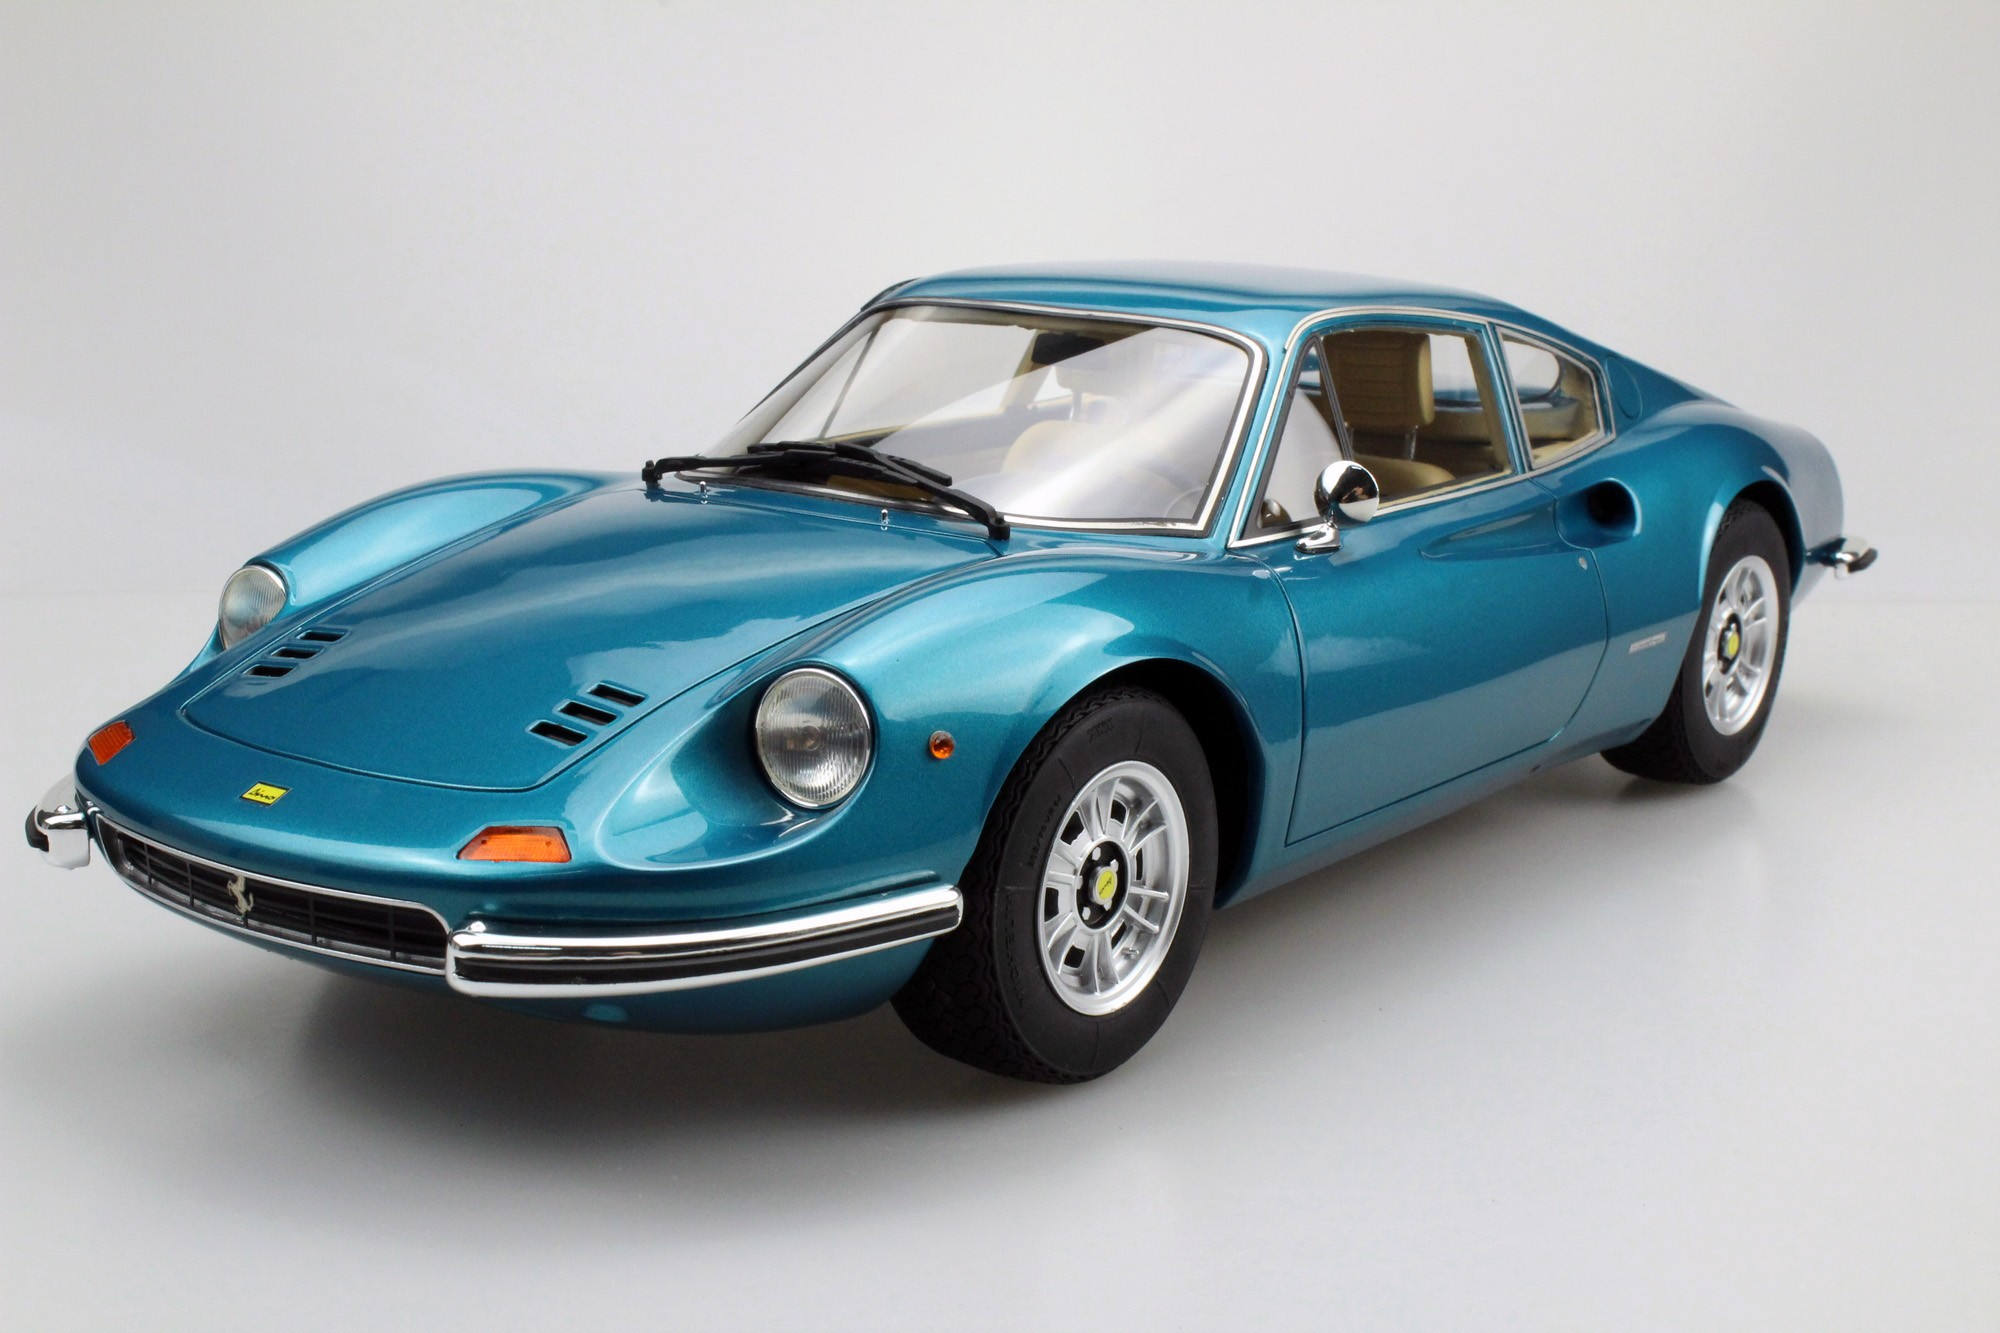 Top Marques Collectibles Dino 246 Gt 1 12 Green Tm12 02h